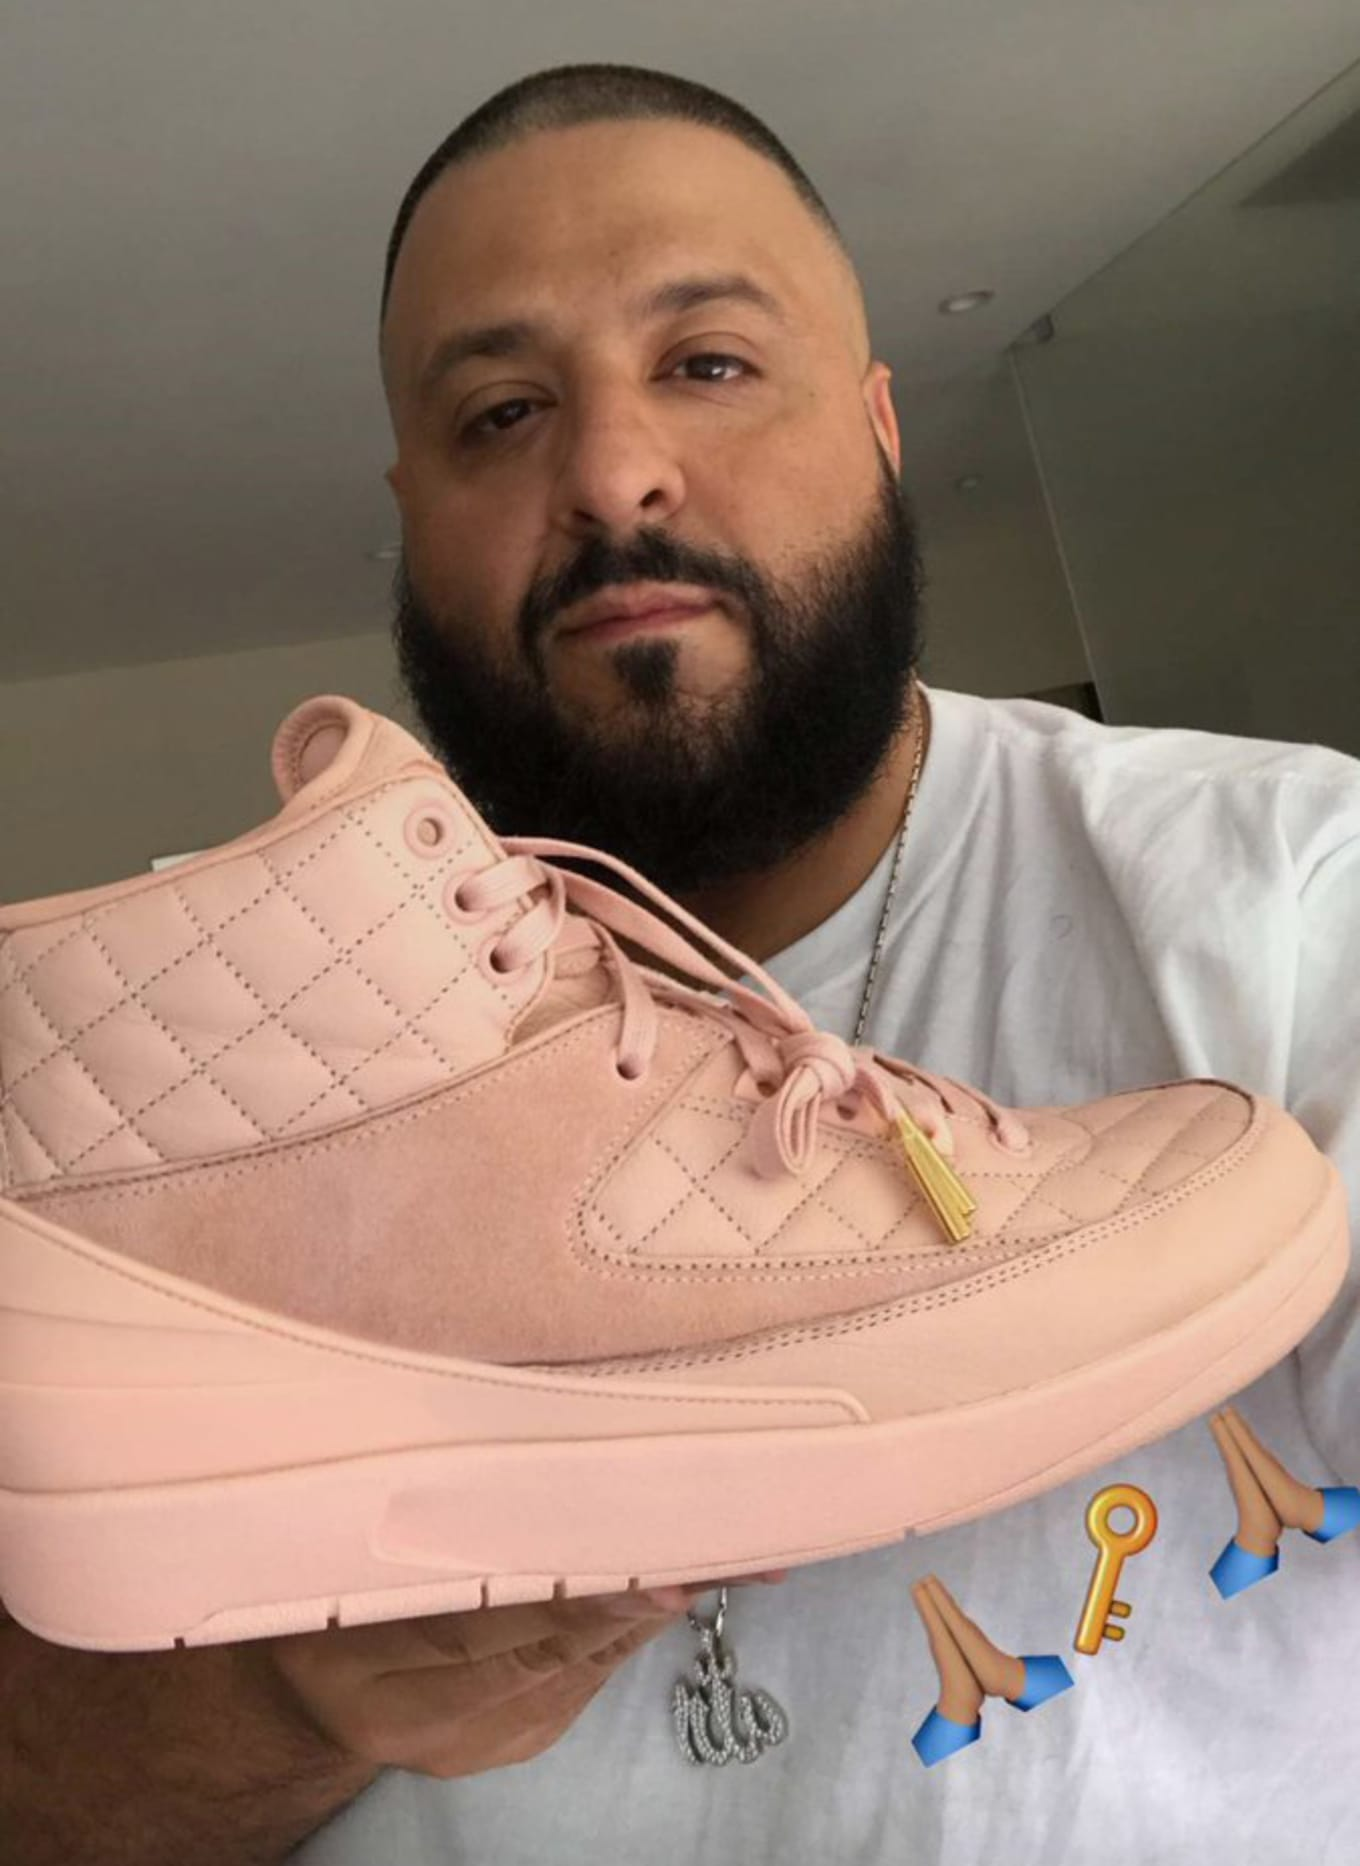 cf6d45404ba6 Pink Just Don x Air Jordan 2s Are Only Releasing in Kids  Sizes. DJ Khaled  explains how he got his size.